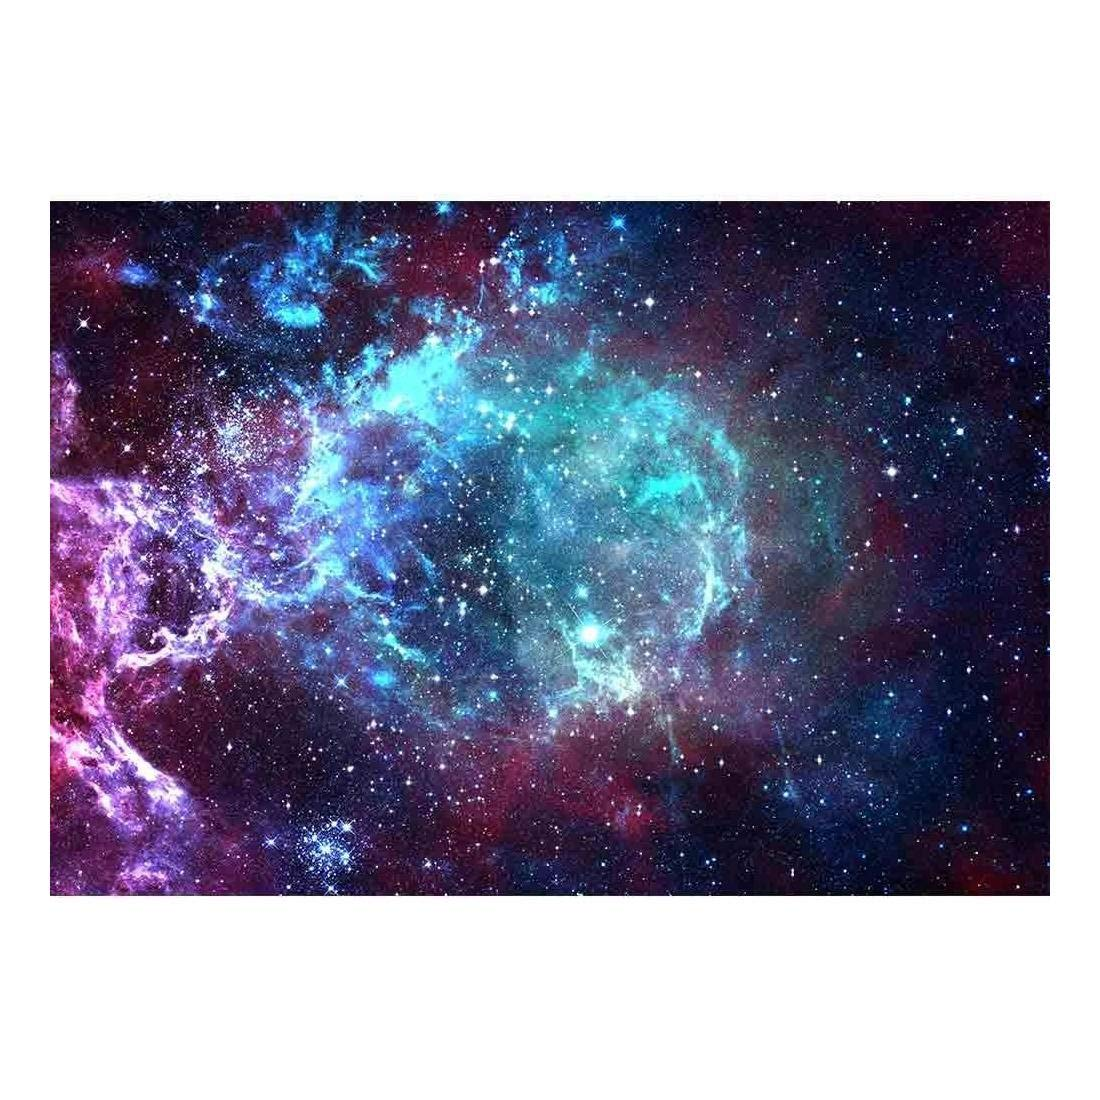 wall26 - Star Field in Space a Nebulae and a Gas Congestion - Removable Wall Mural | Self-Adhesive Large Wallpaper - 66x96 inches